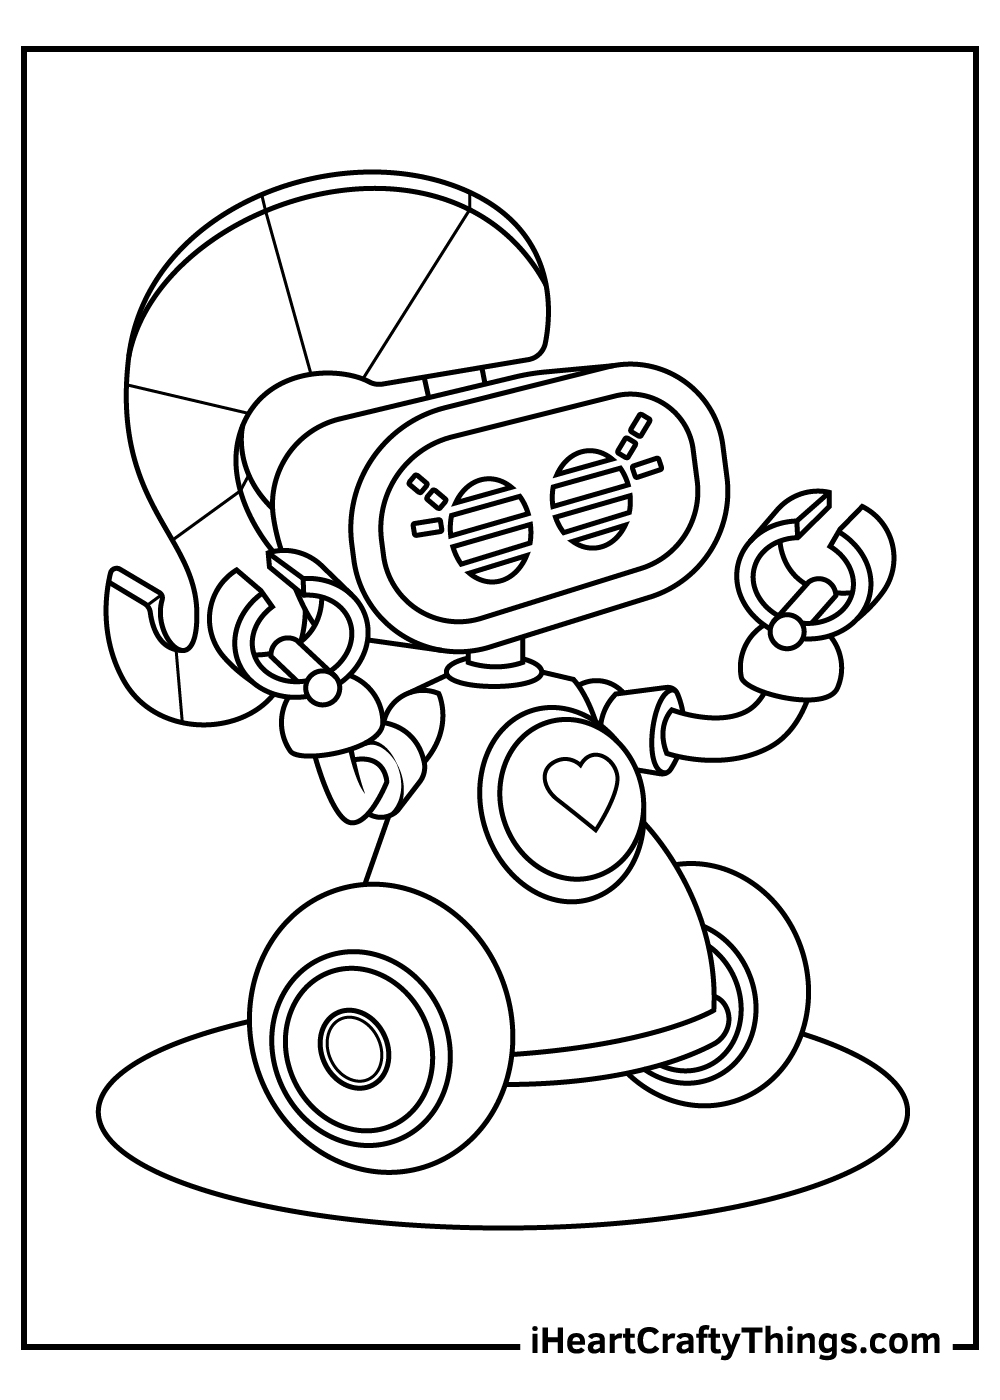 zoe lego friends coloring pages free pdf print